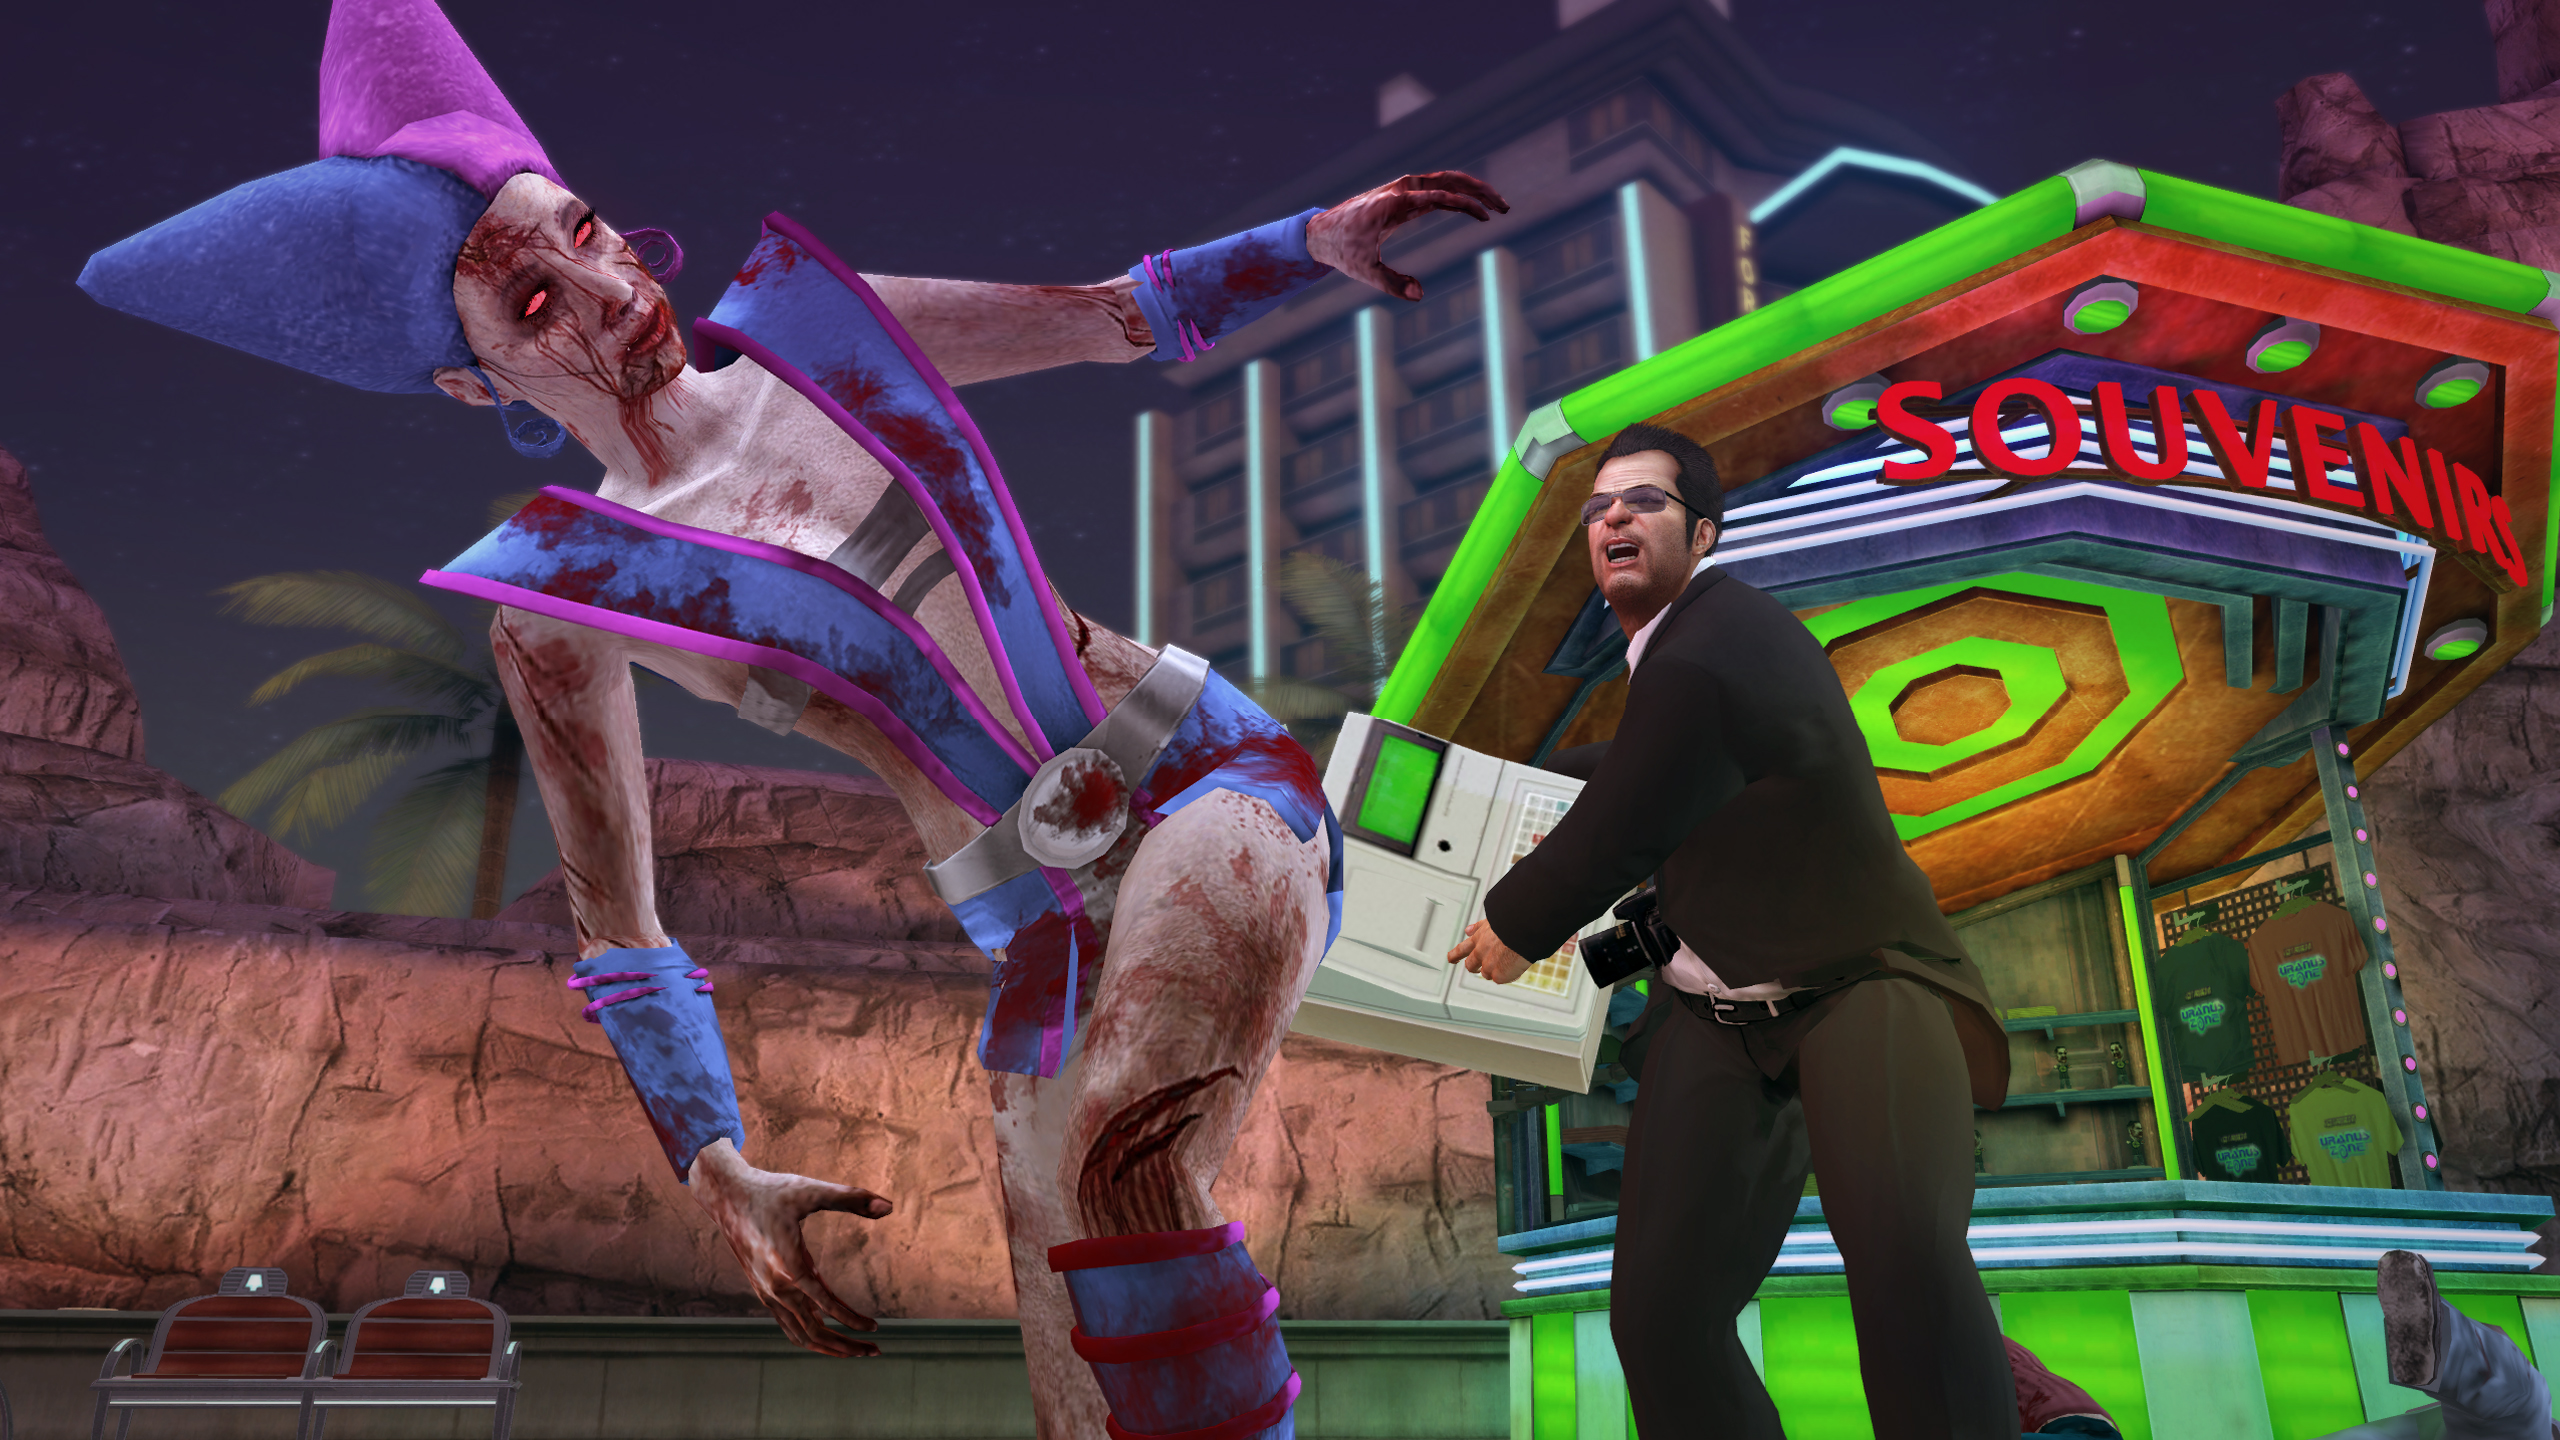 Dead Rising 2: Off the Record E3 2011 Trailer, Gameplay, & Information